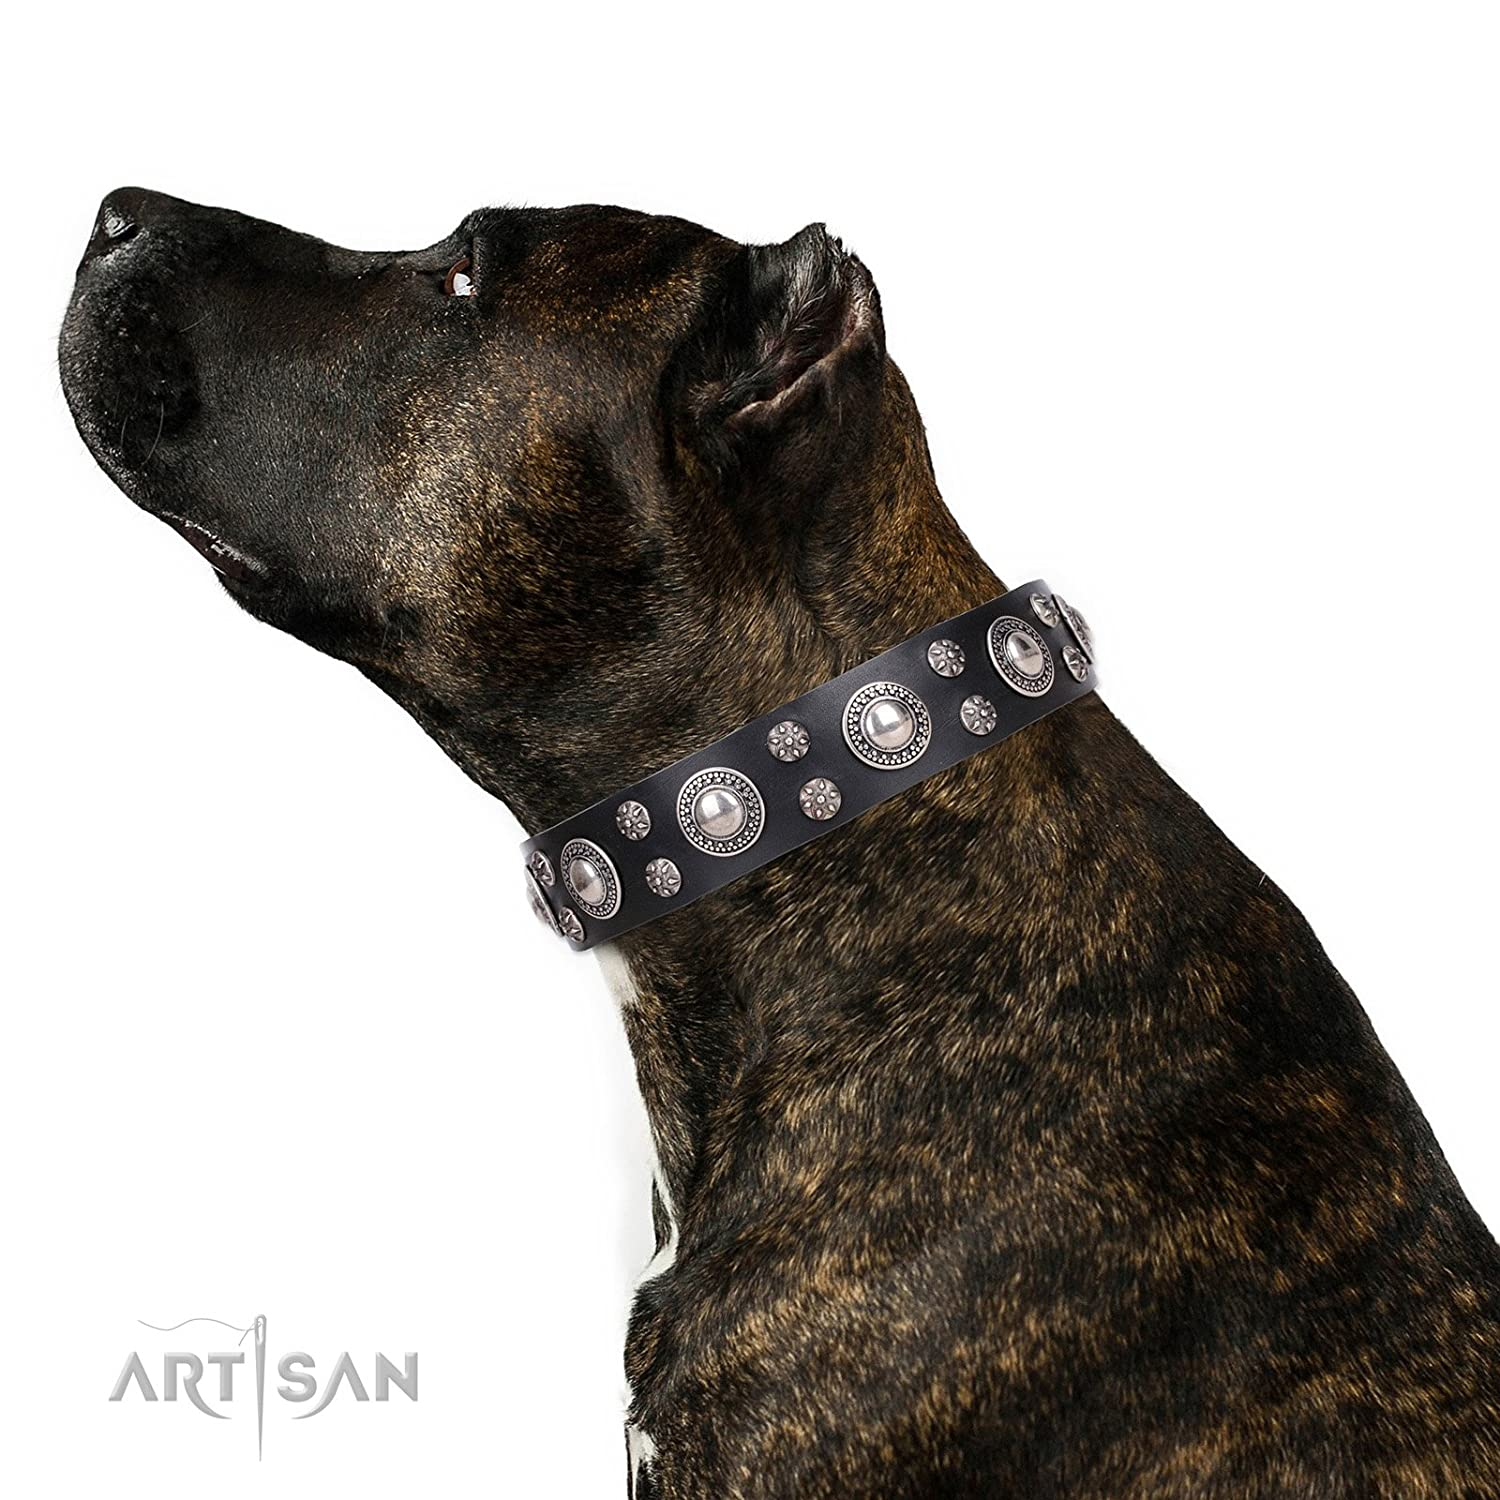 Fits for 16 inch (40cm) dog's neck size FDT Artisan 16 inch Black Leather Dog Collar with Chrome Plated Decorations  Round Delicacy